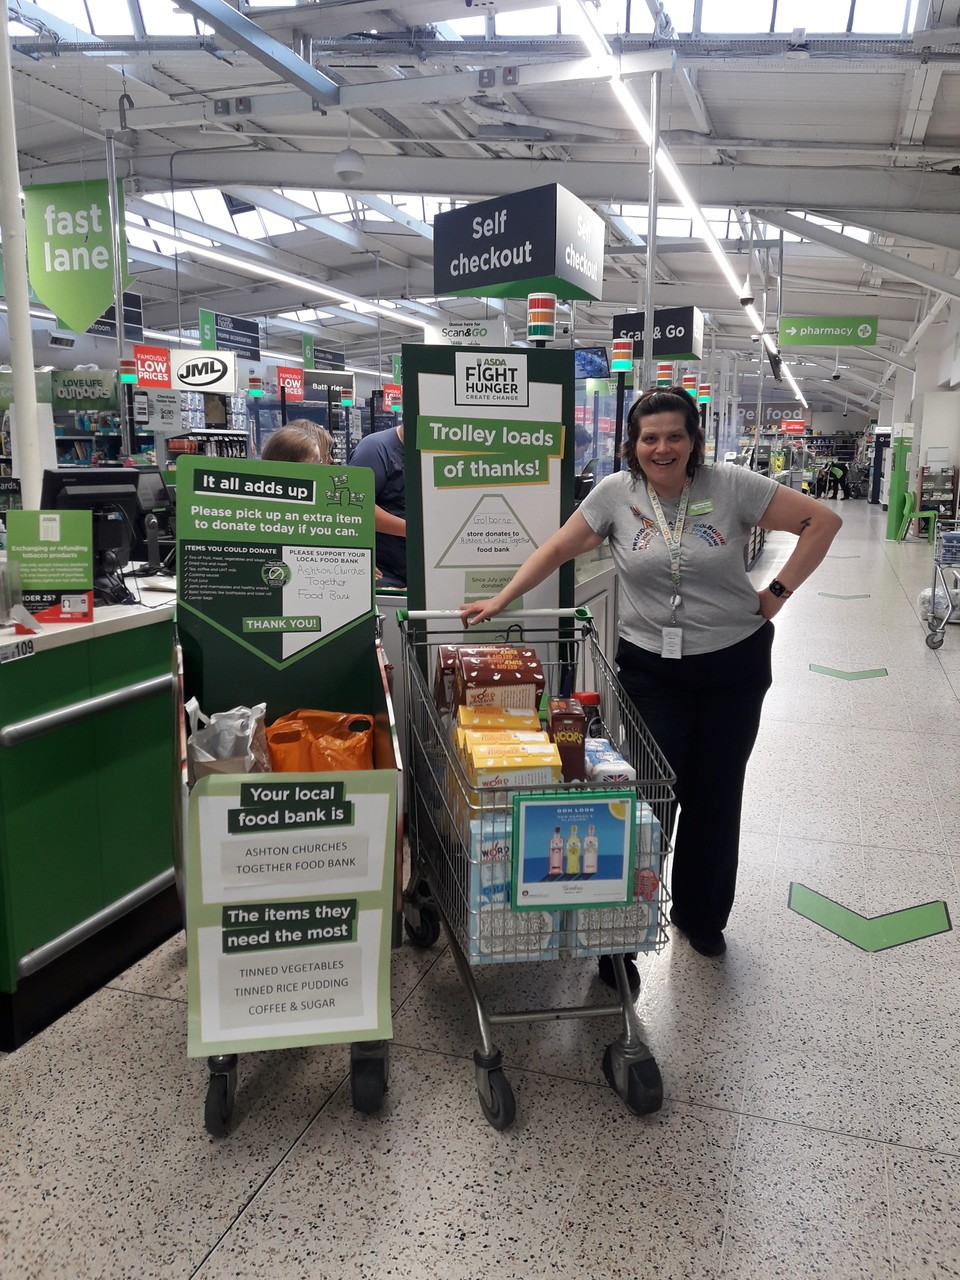 Donation to Ashton Churches Together Food Bank | Asda Golborne